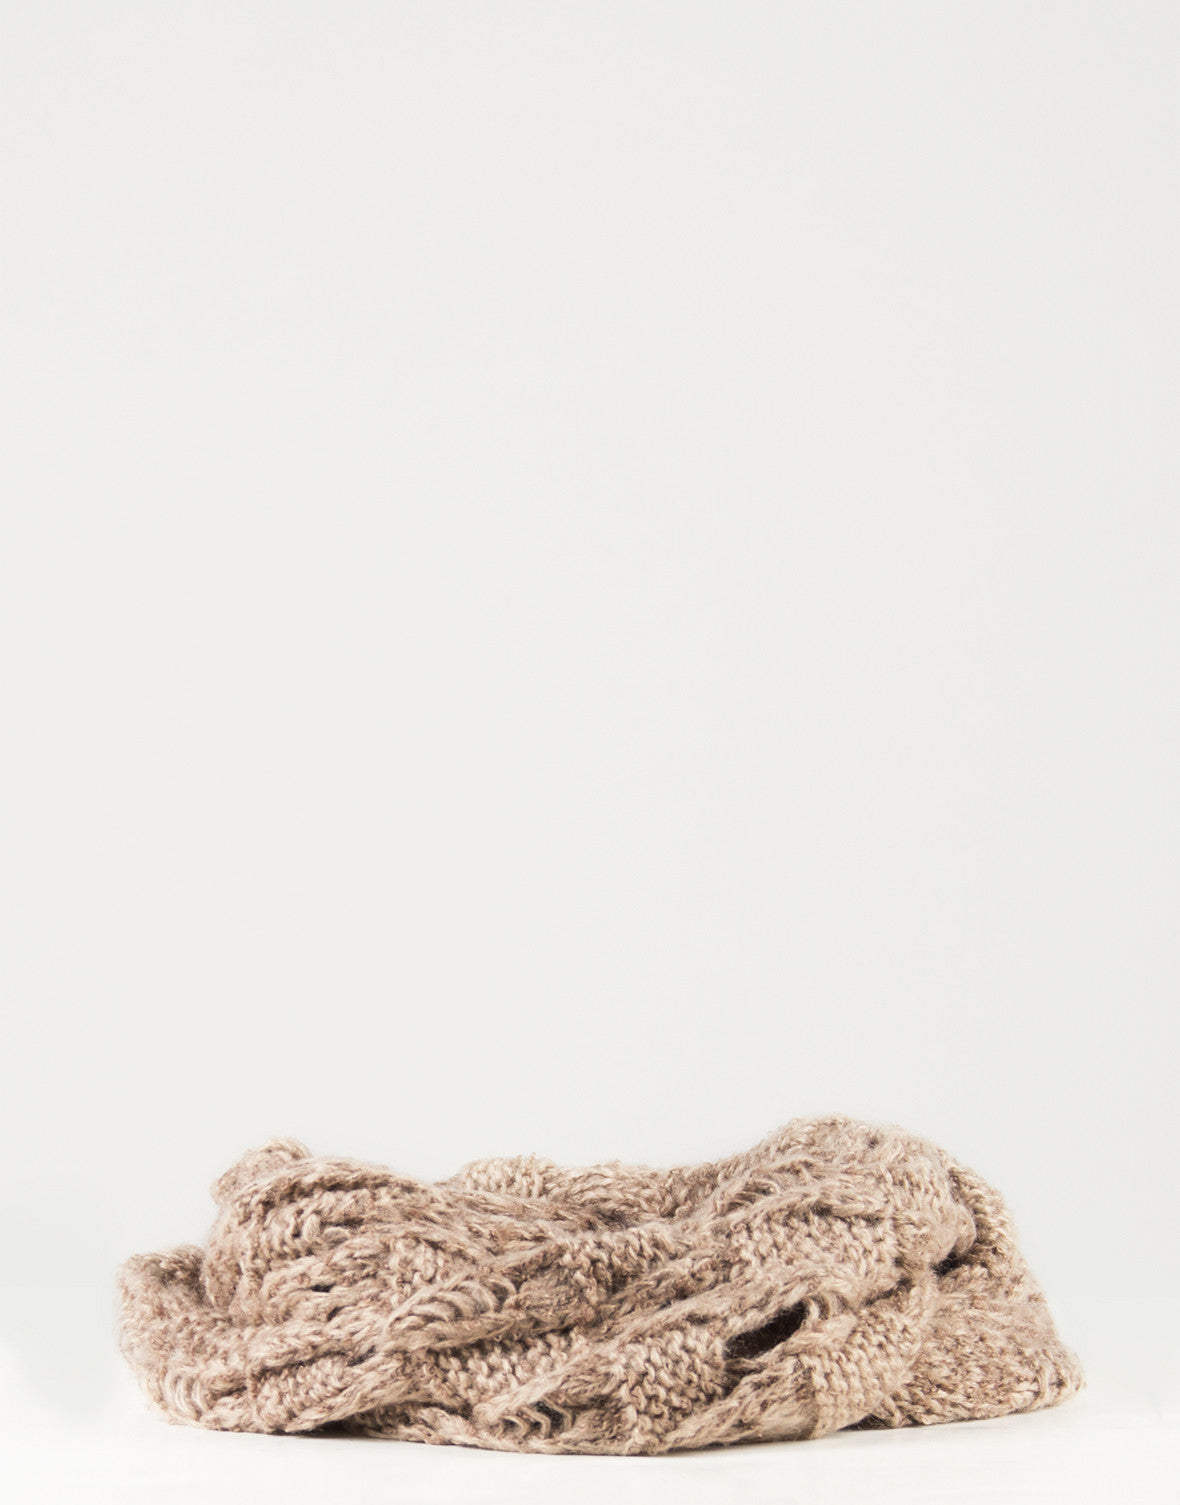 Holey Knit Infinity Scarf - Taupe